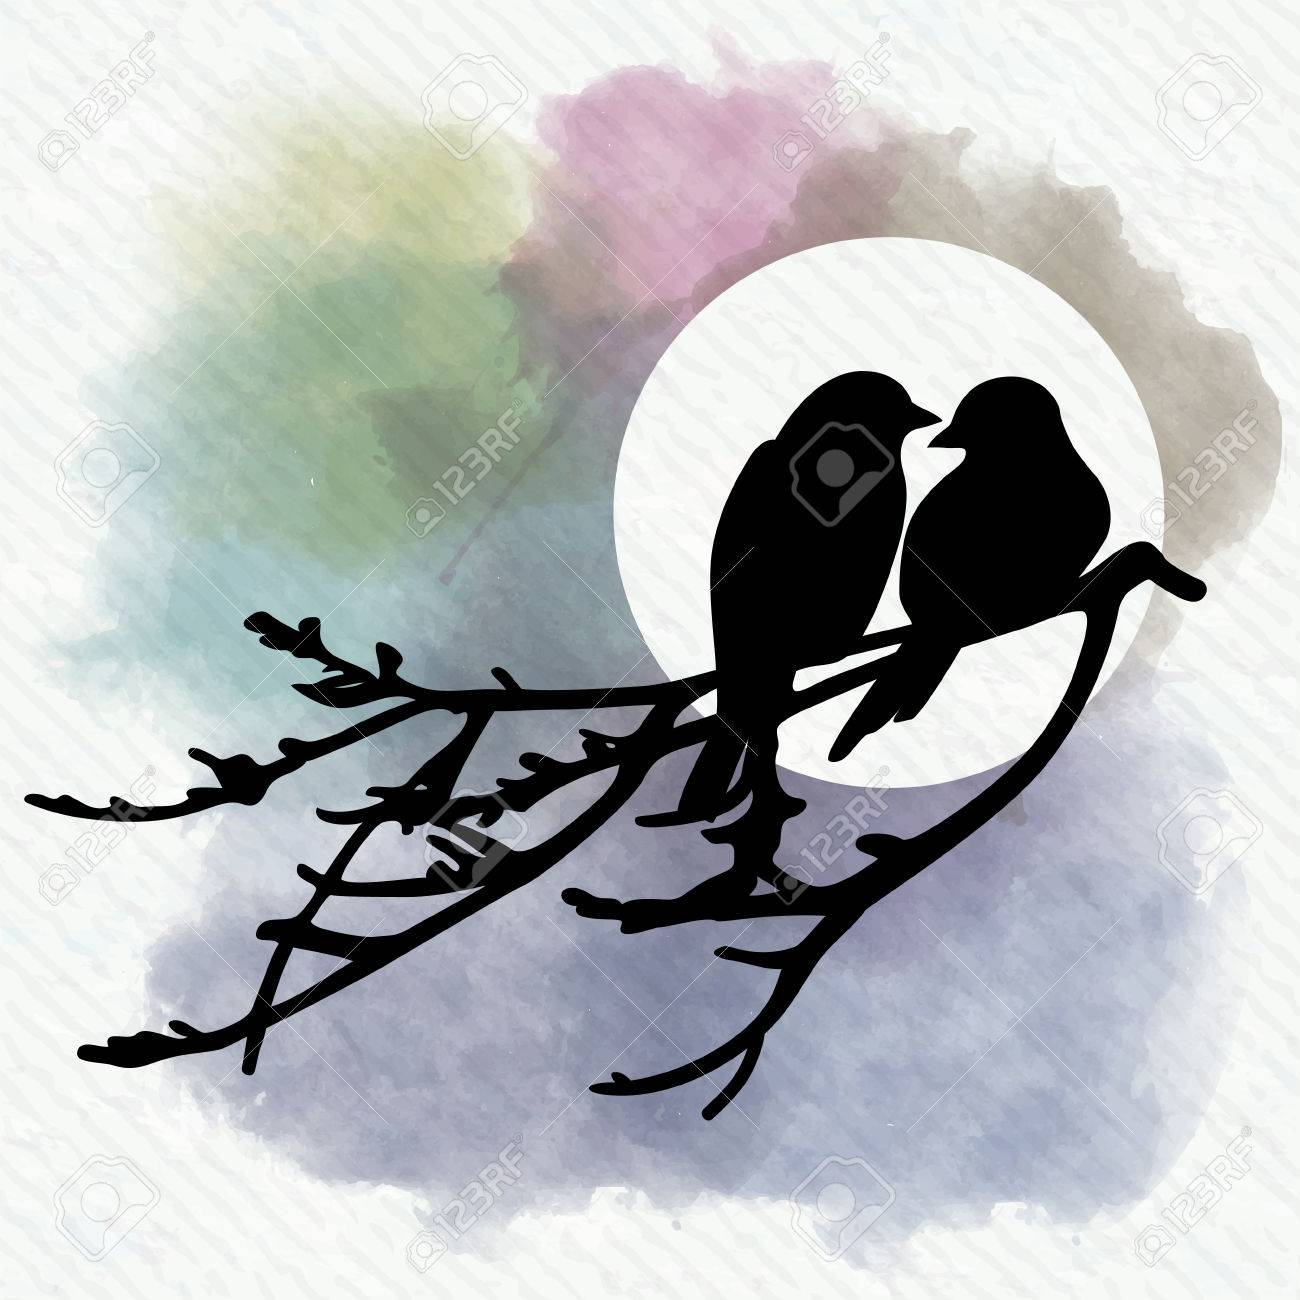 Two Birds Kissing On A Wire Center L14f1 L14f2 Datasheet Is Sitting Branch Royalty Free Cliparts Vectors And Rh 123rf Com Three